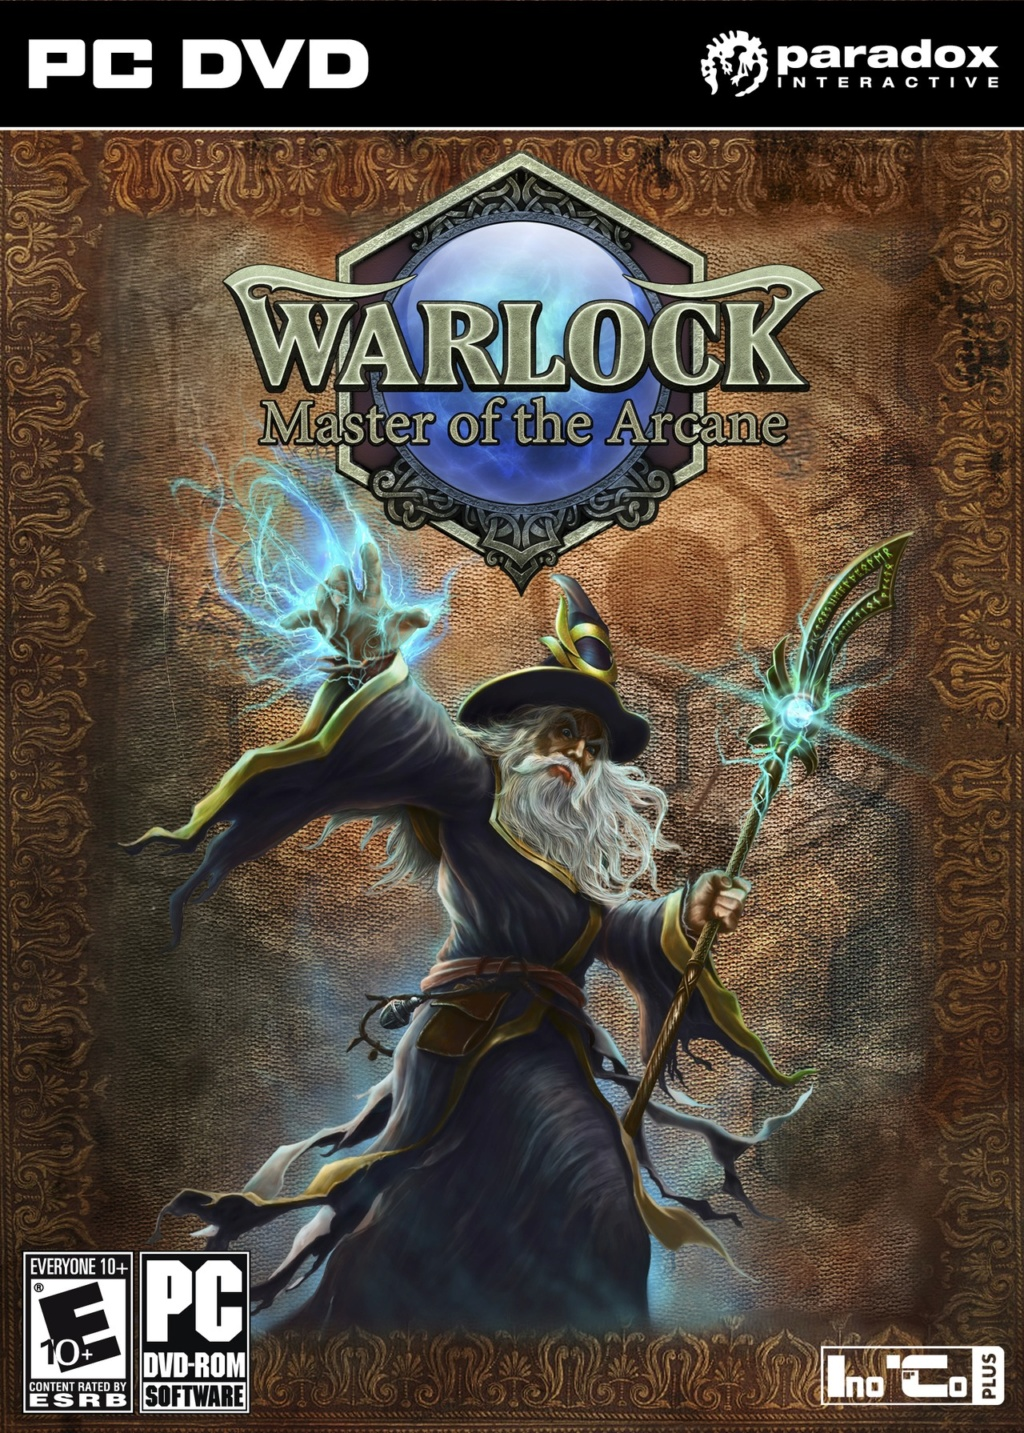 [VD] Warlock Master of the Arcane - 2012 - PC Jaquet10